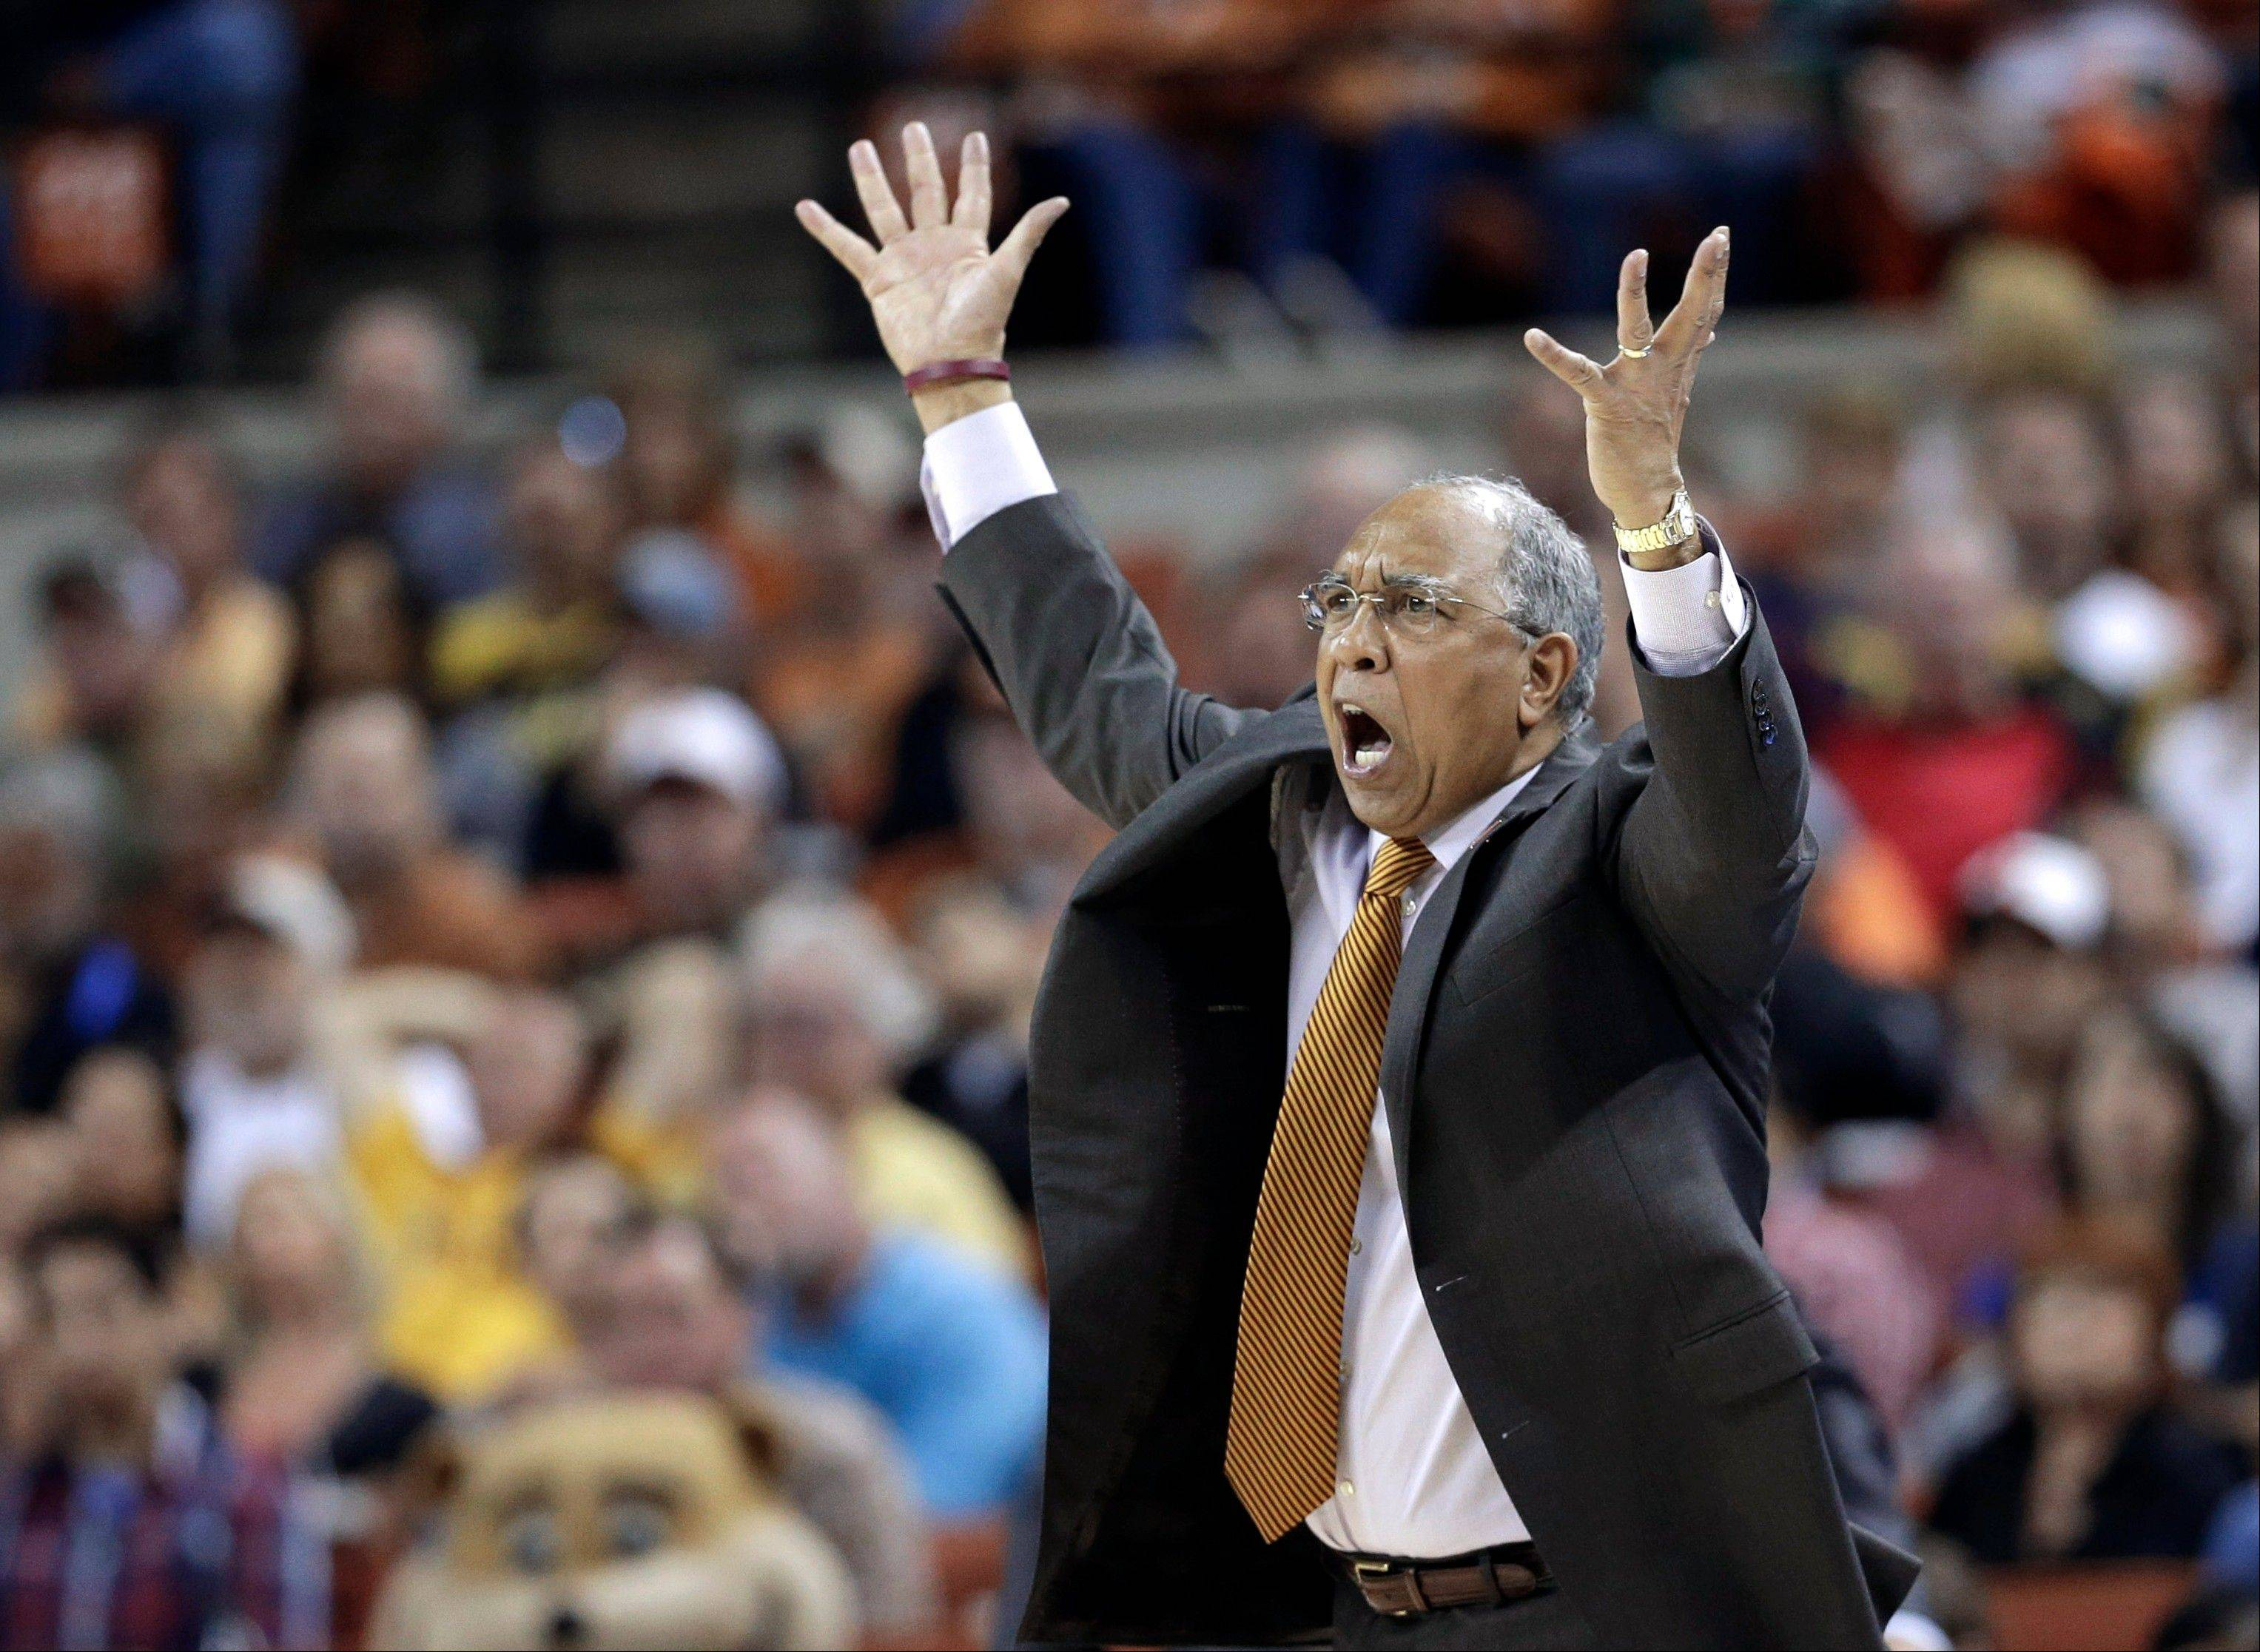 Minnesota coach Tubby Smith reacts to a foul call Sunday during the second half of a third-round game against Florida in the NCAA tournament in Austin, Texas. Florida defeated Minnesota 78-64.